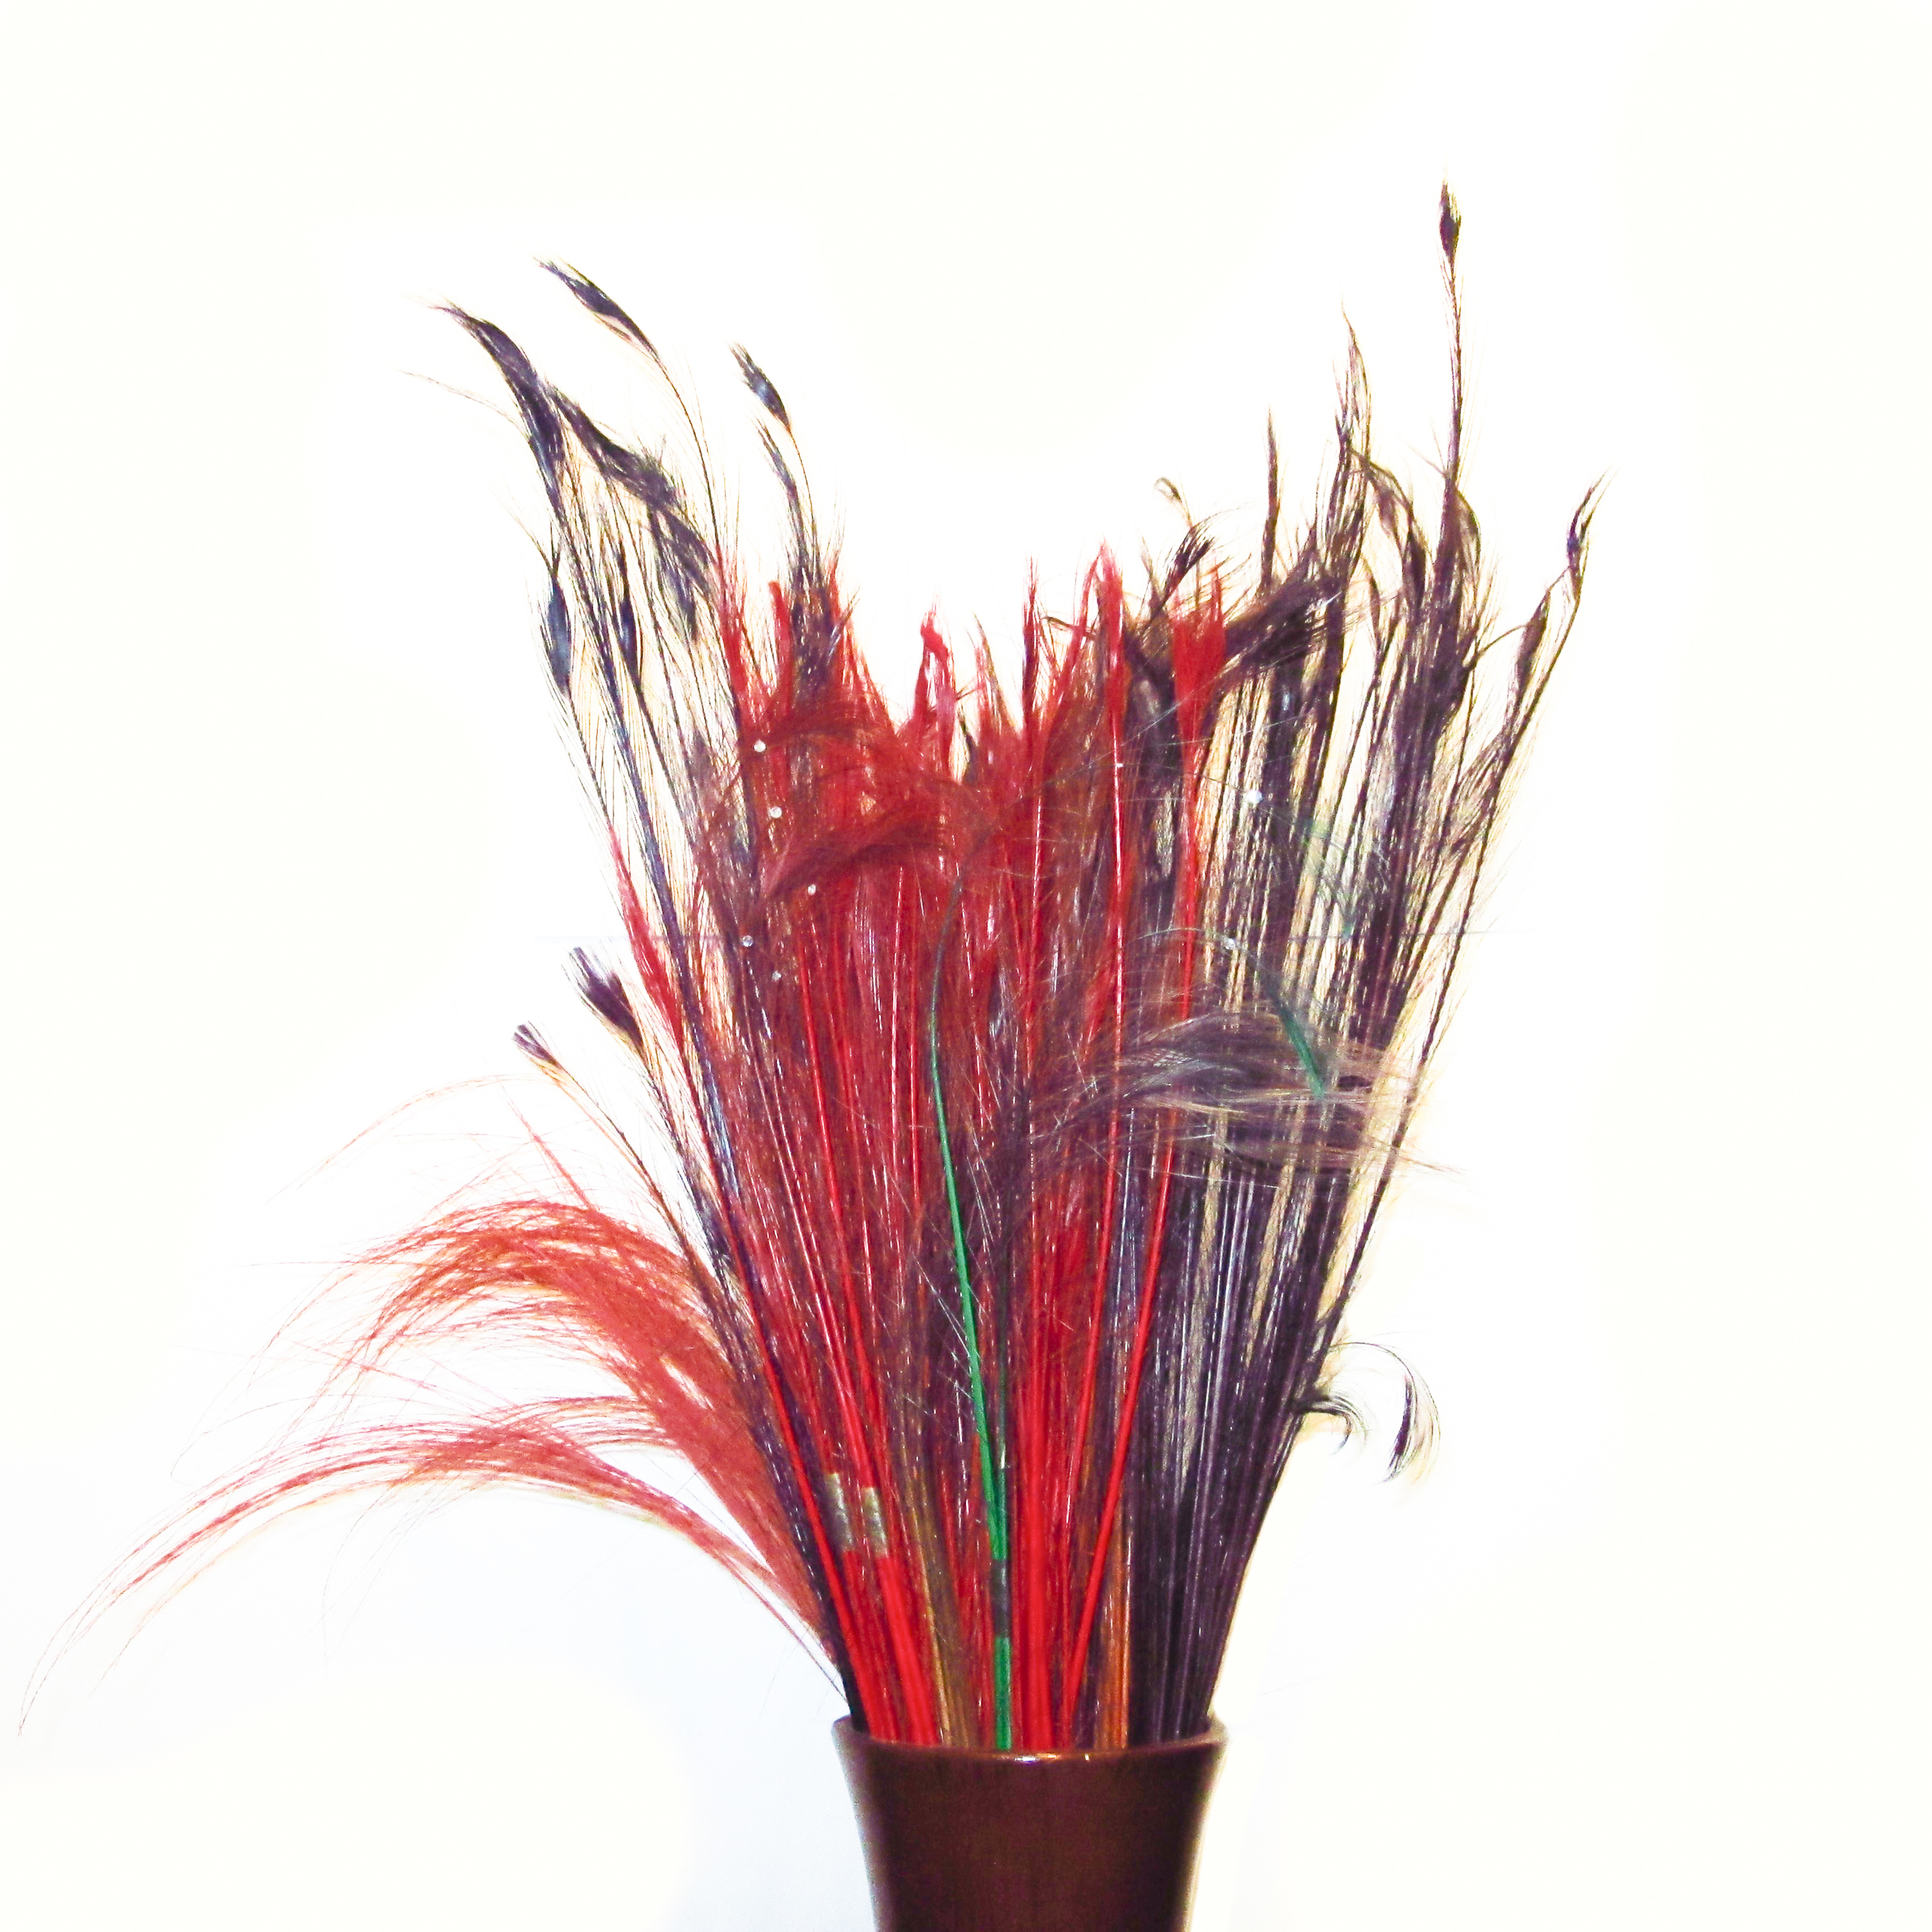 Dyed peacock feathers